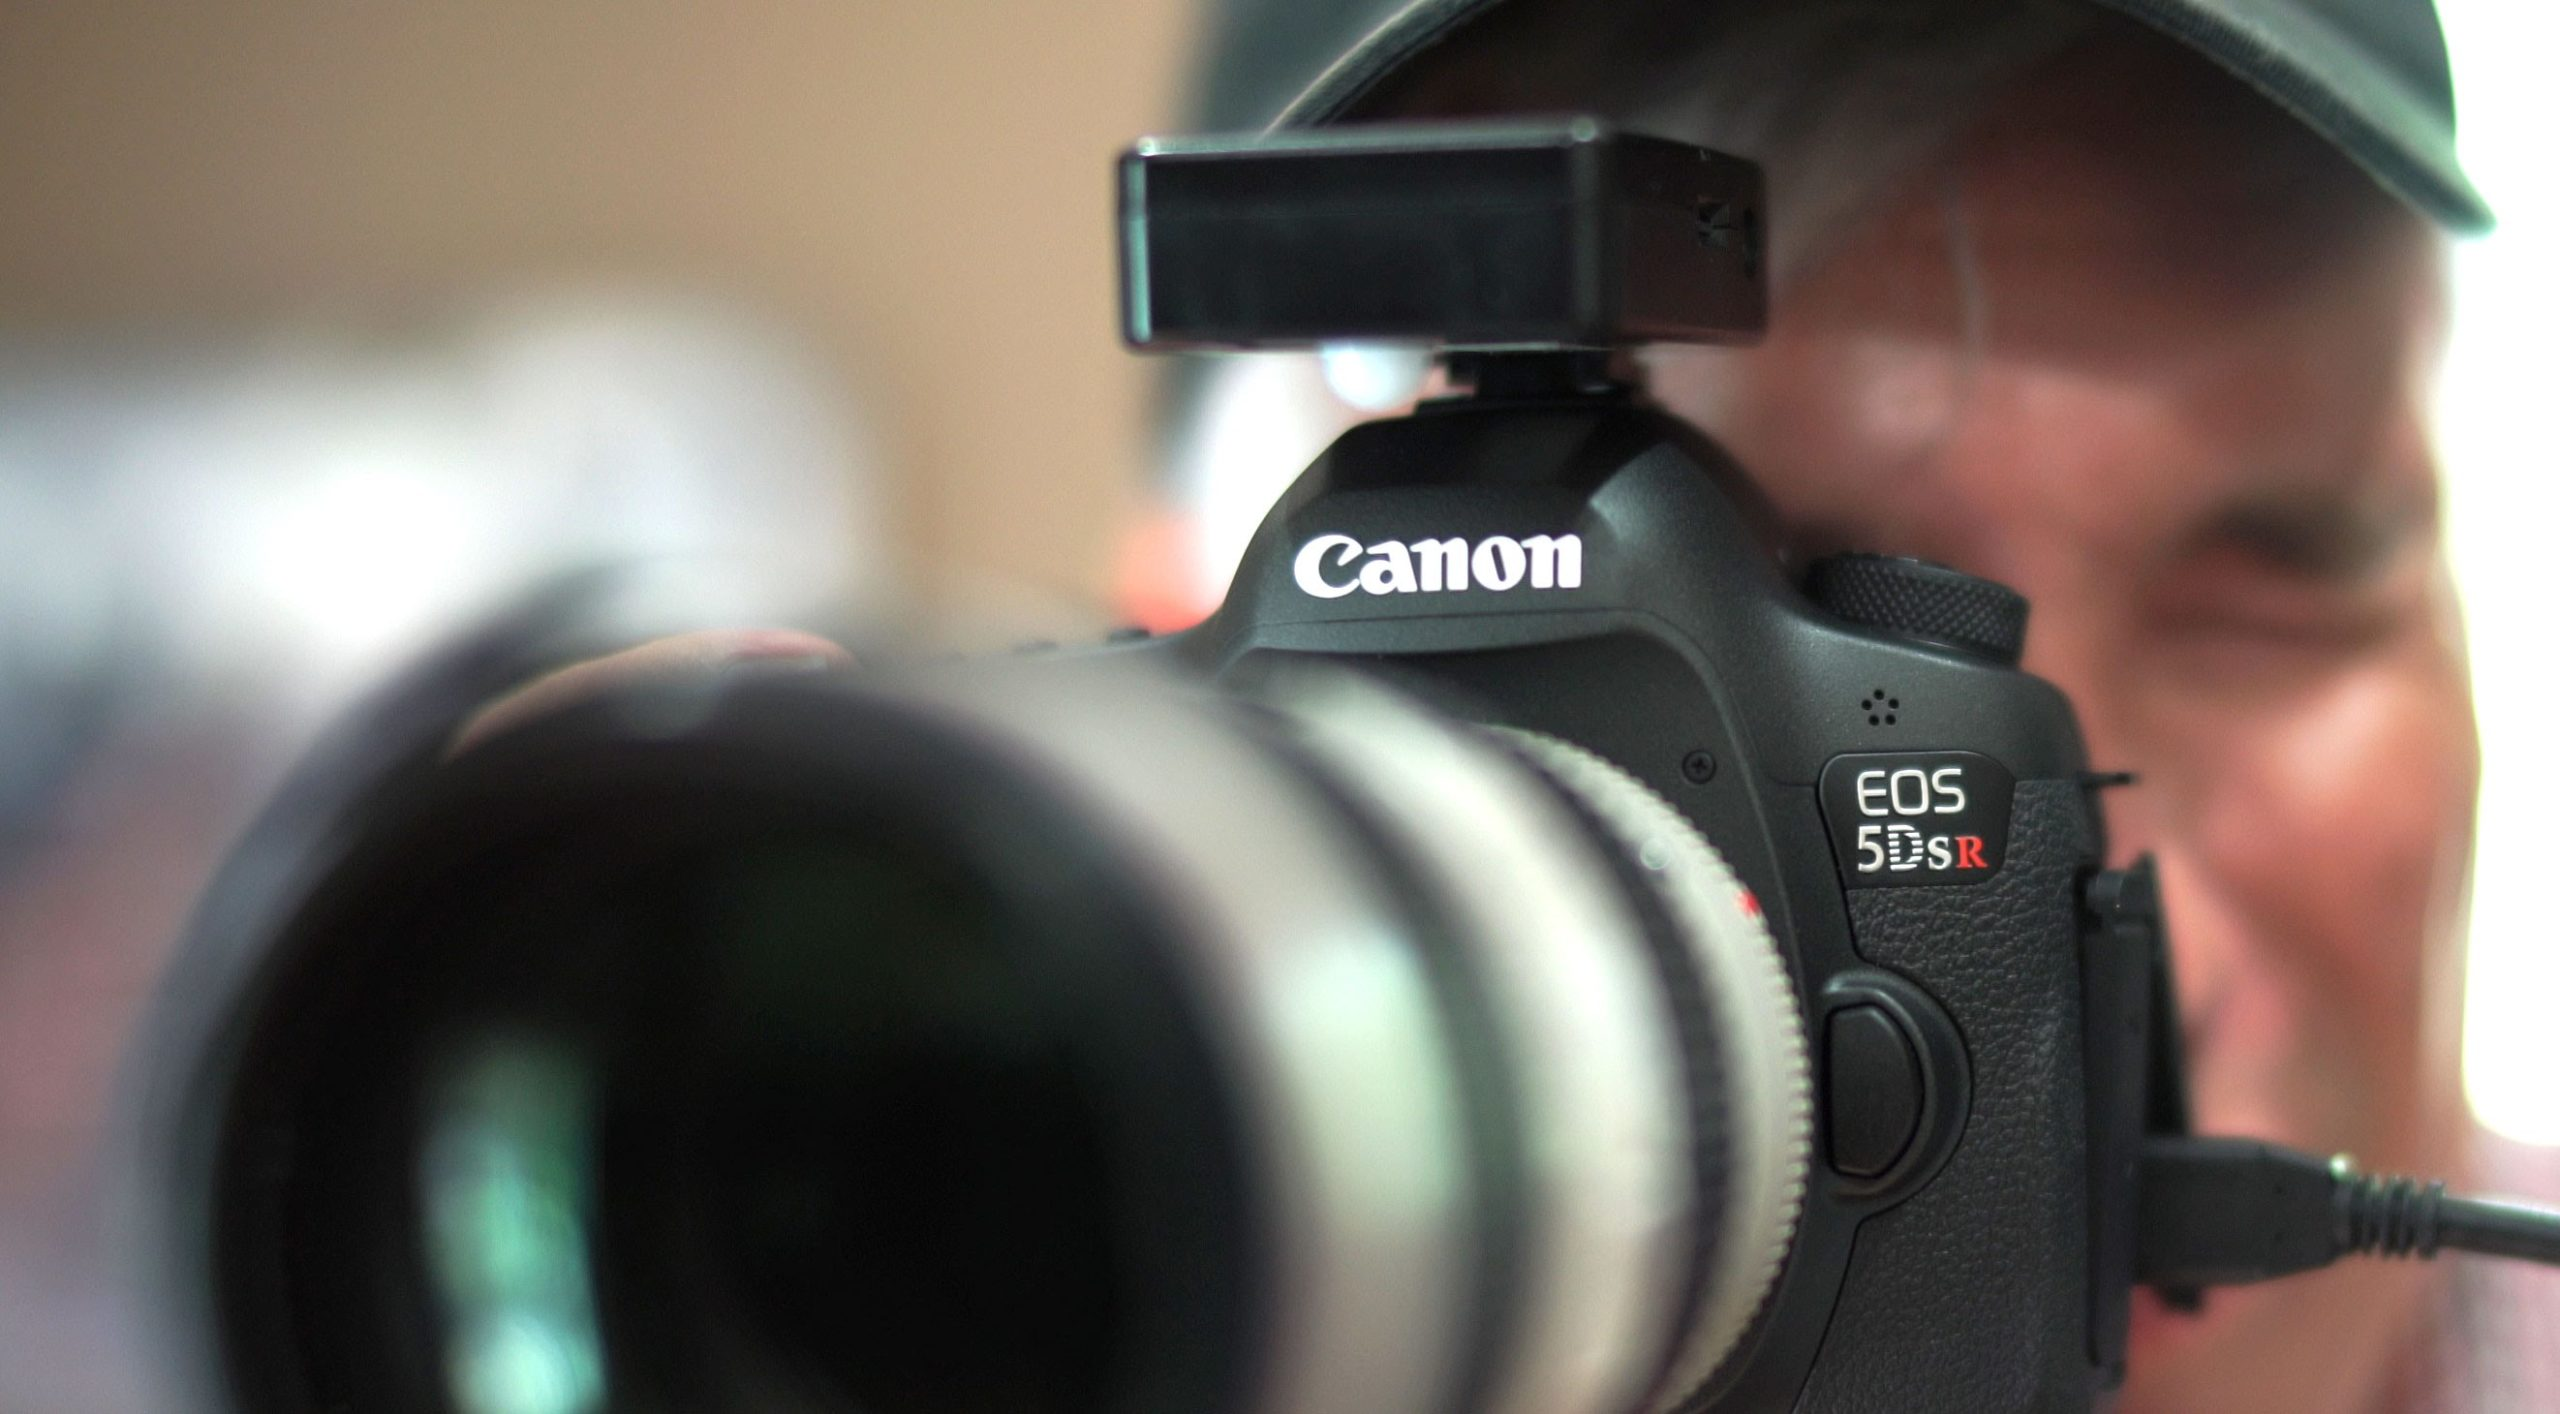 Nikon D810 Hands On Review A Look At The Canon EOS 5DS R Image Quality Compared To Competition